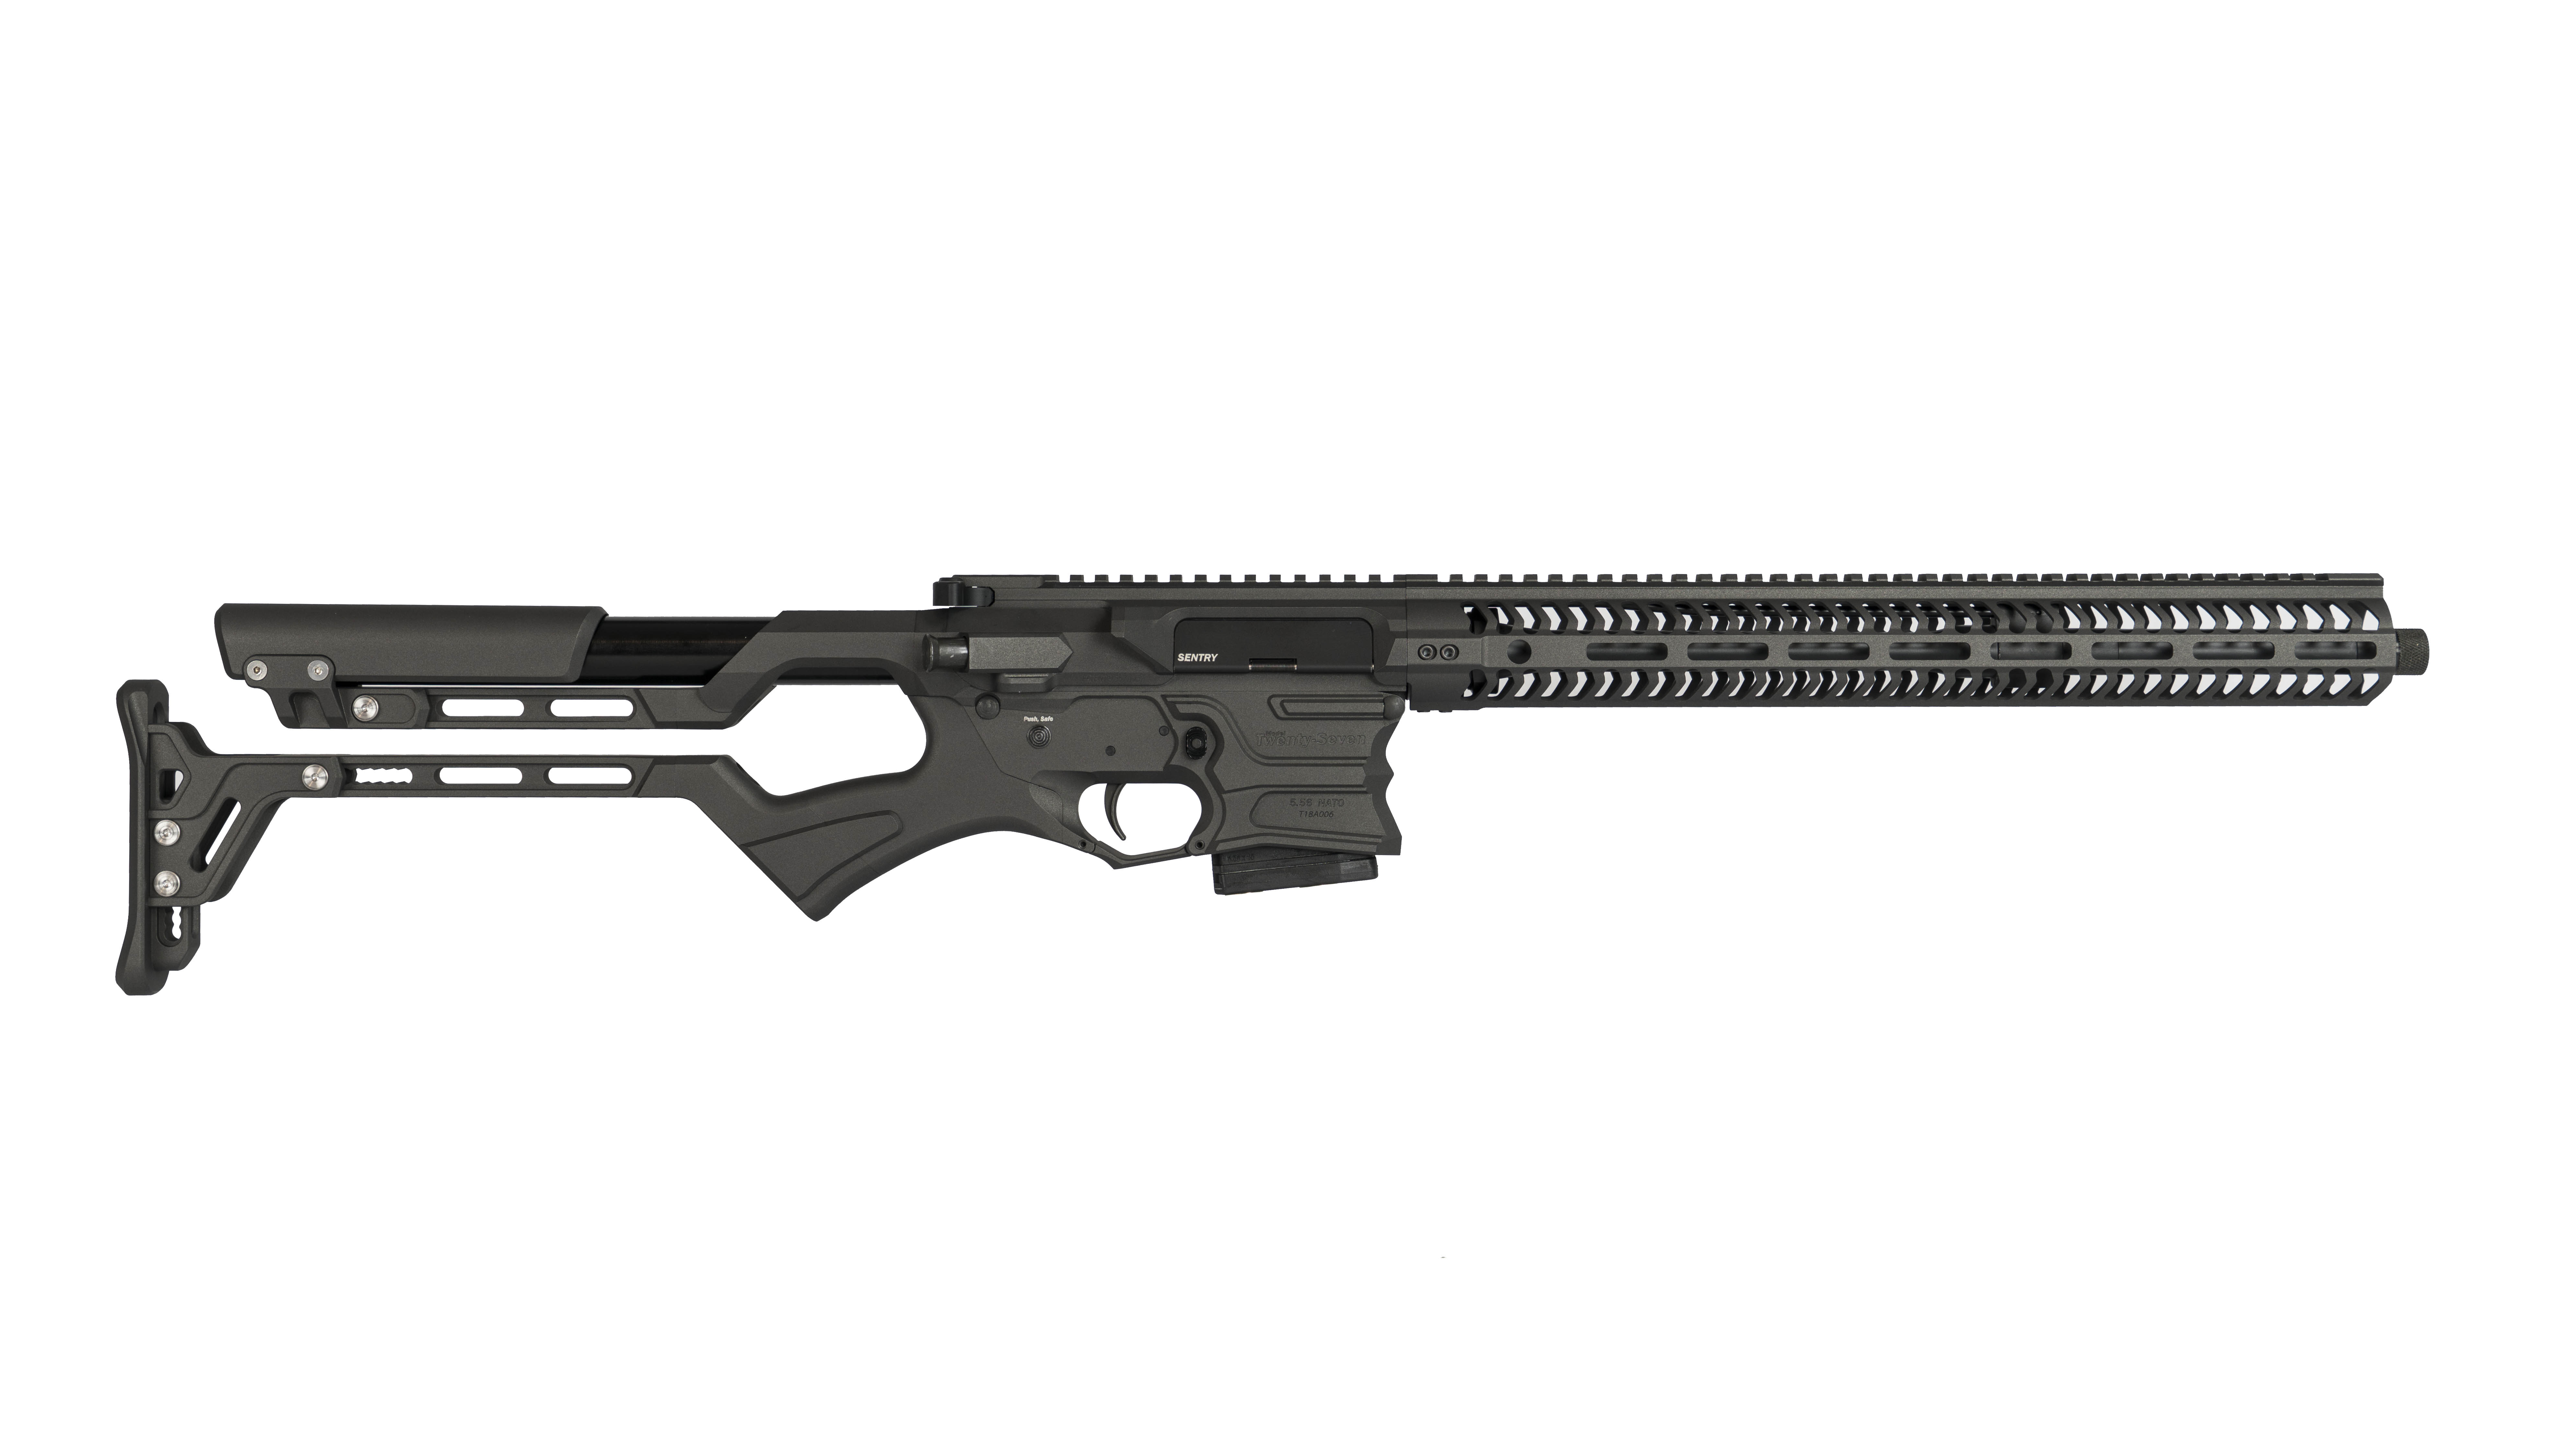 Any-State Compliant AR-15 from Cobalt Kinetics